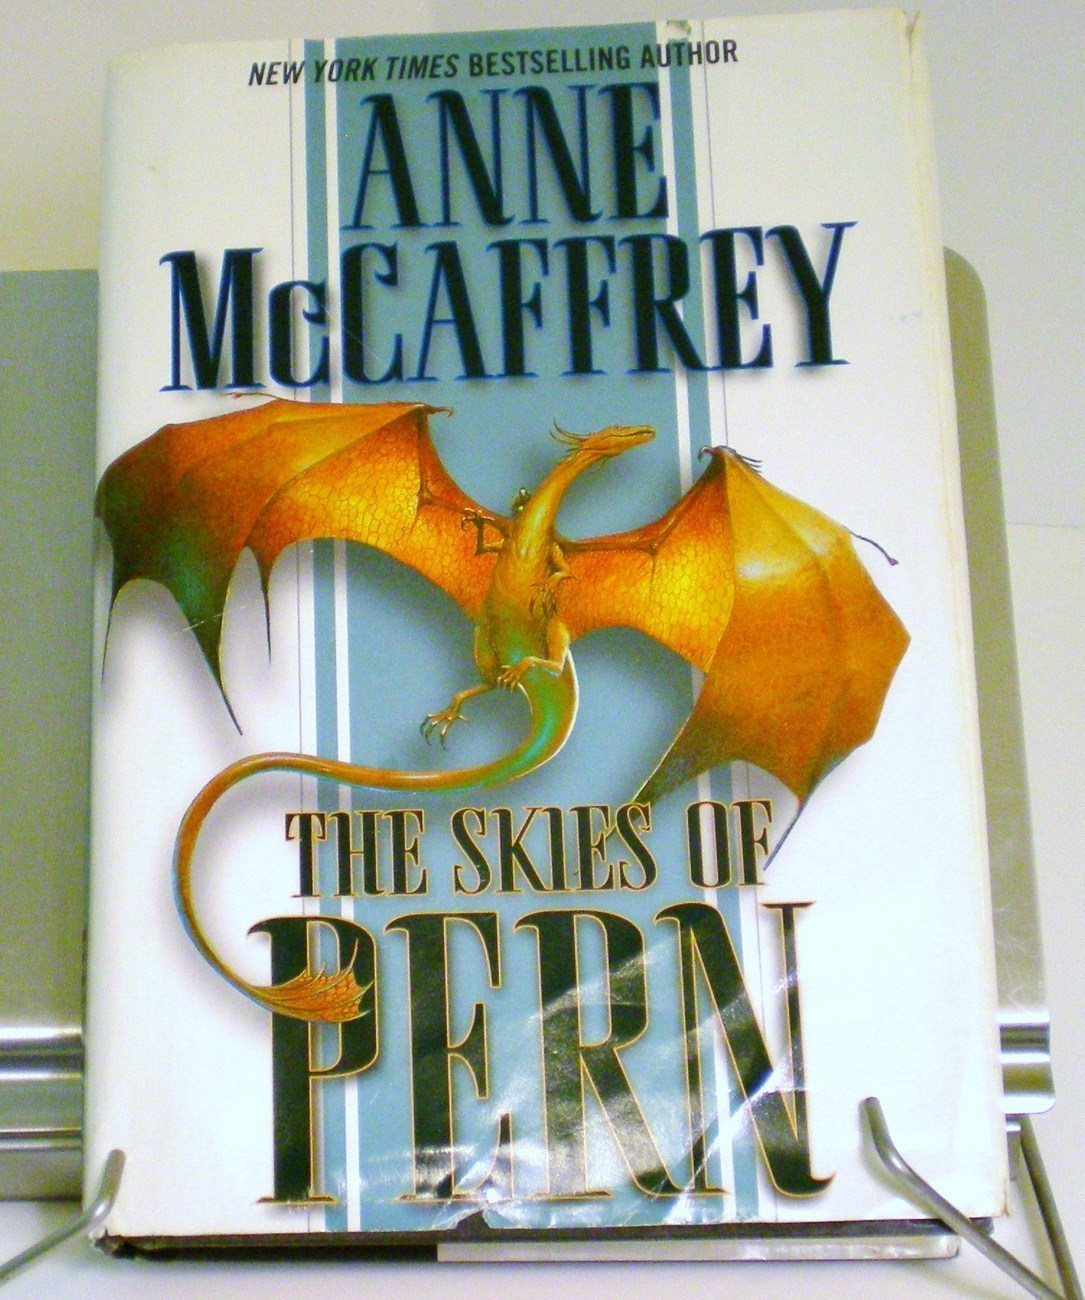 The Skies Of Pern by Anne McCaffrey Hardcover 2001 w/DJ